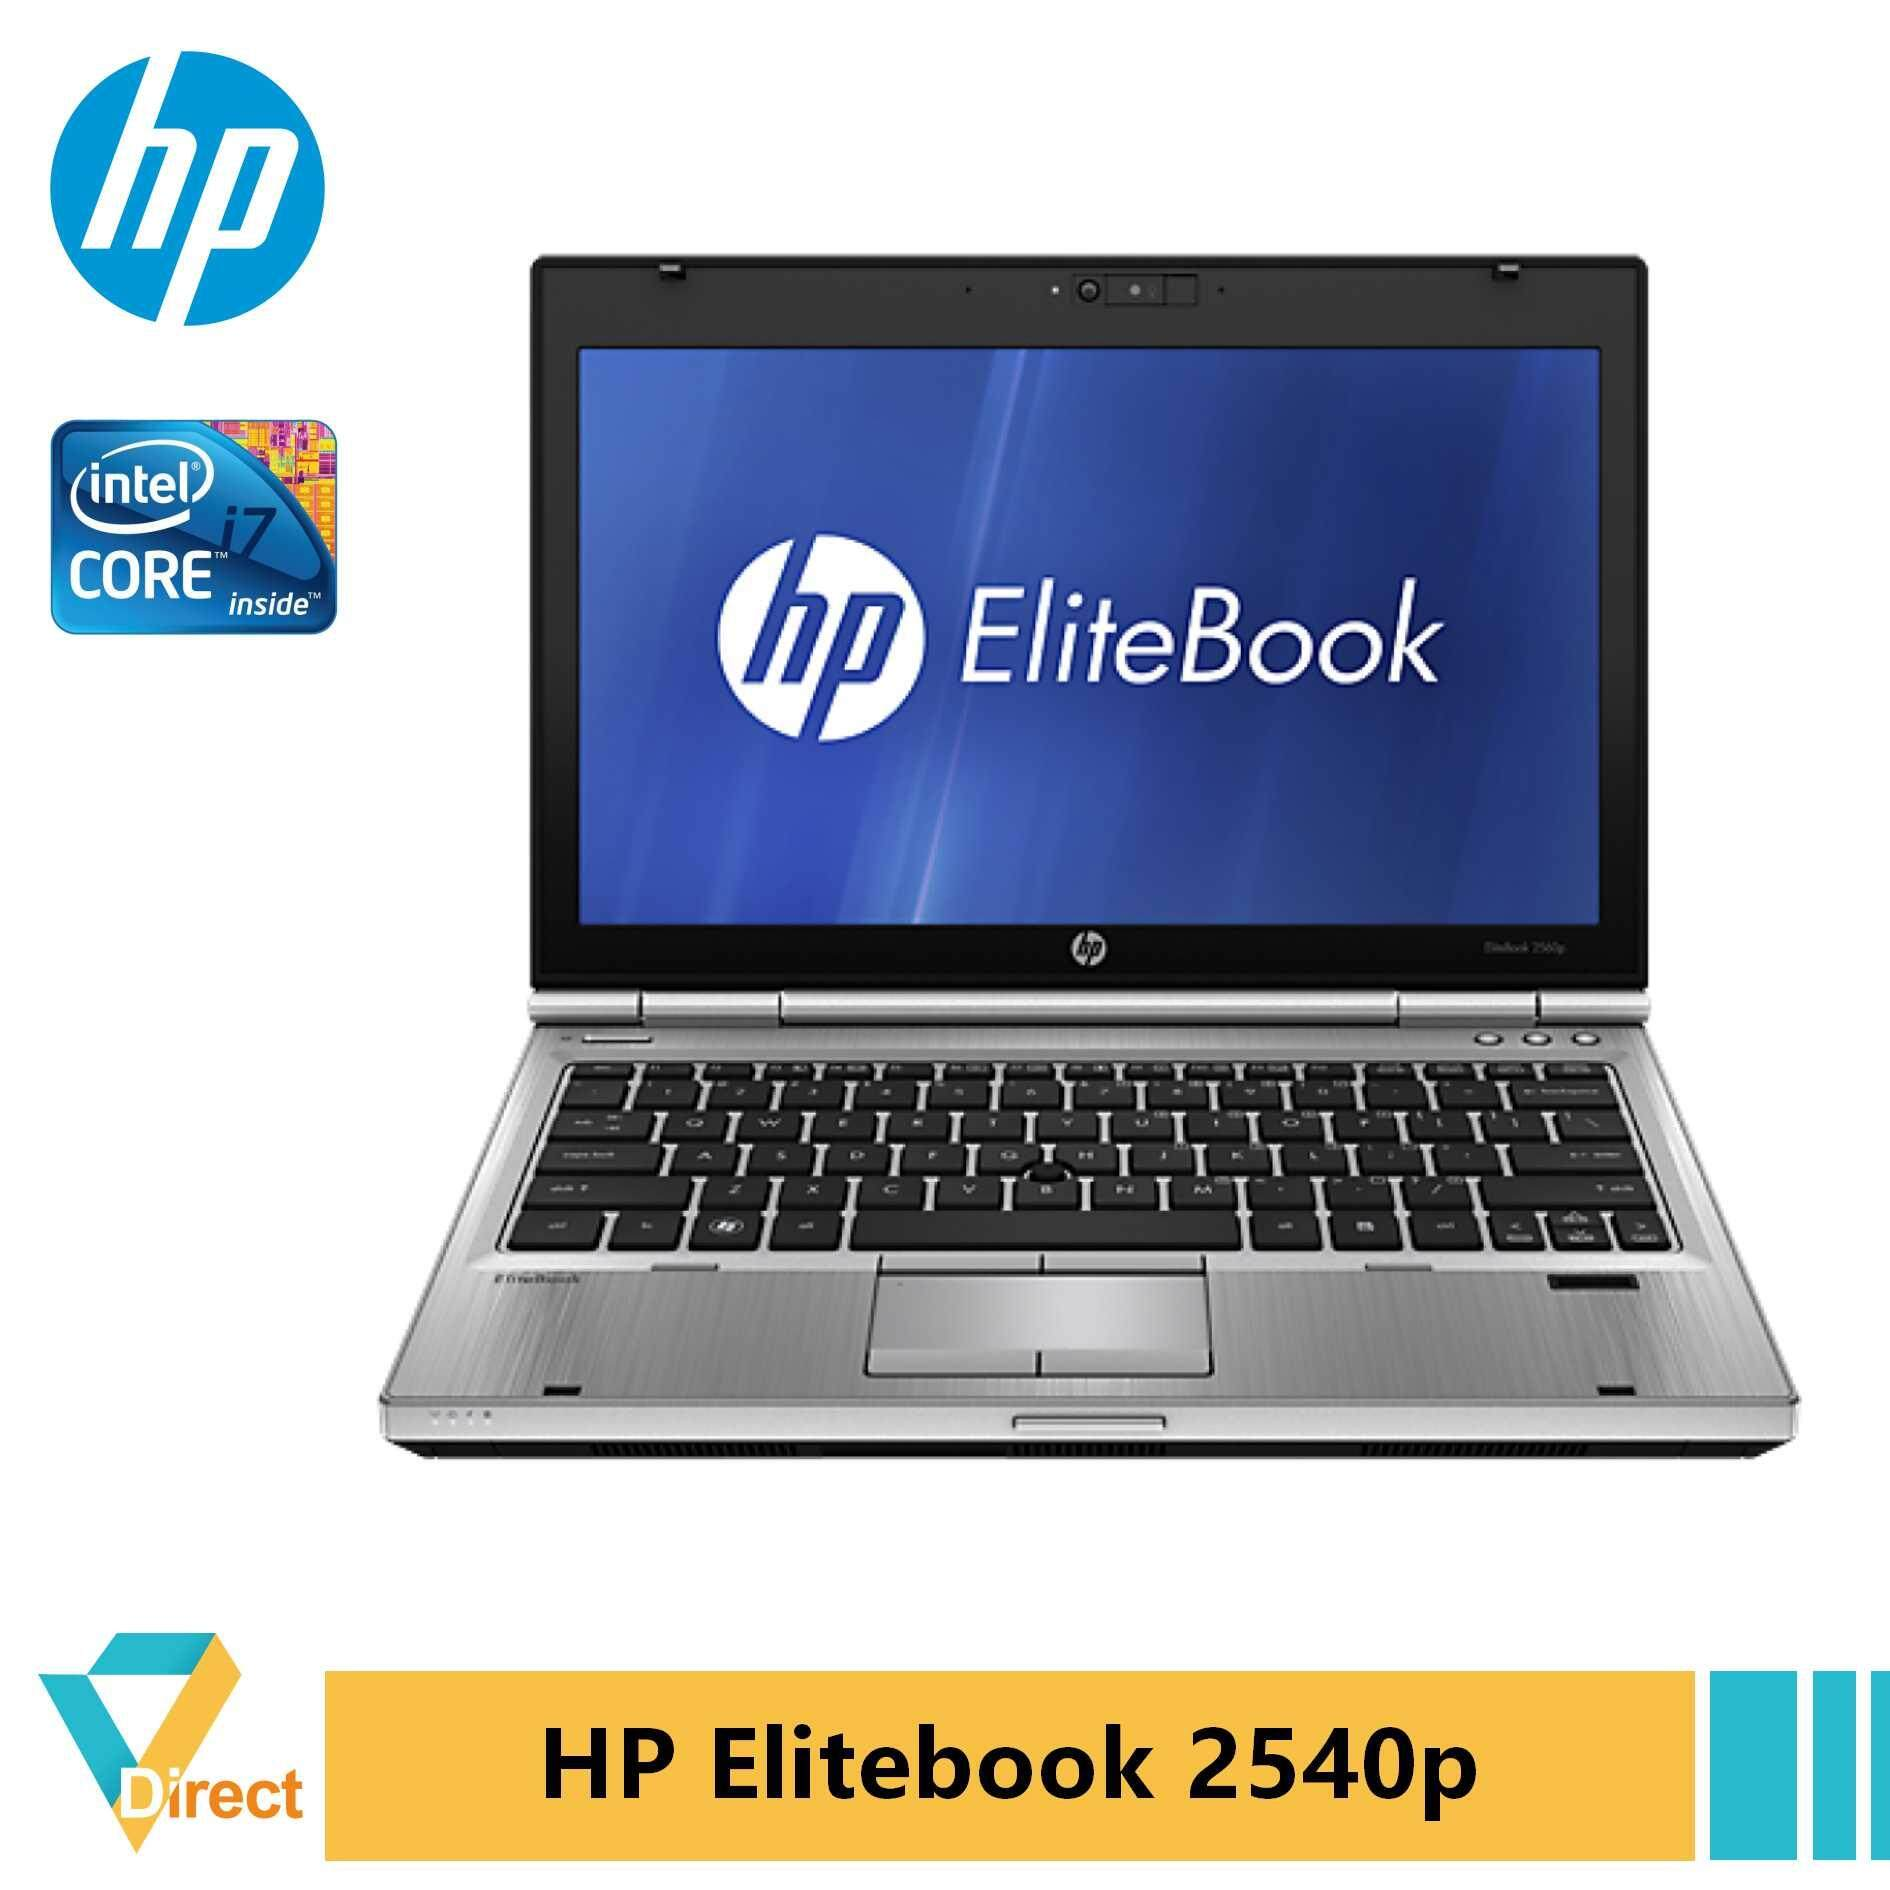 Core i7 8GB HP Elitebook 2540p ultra-portable laptop PC Malaysia